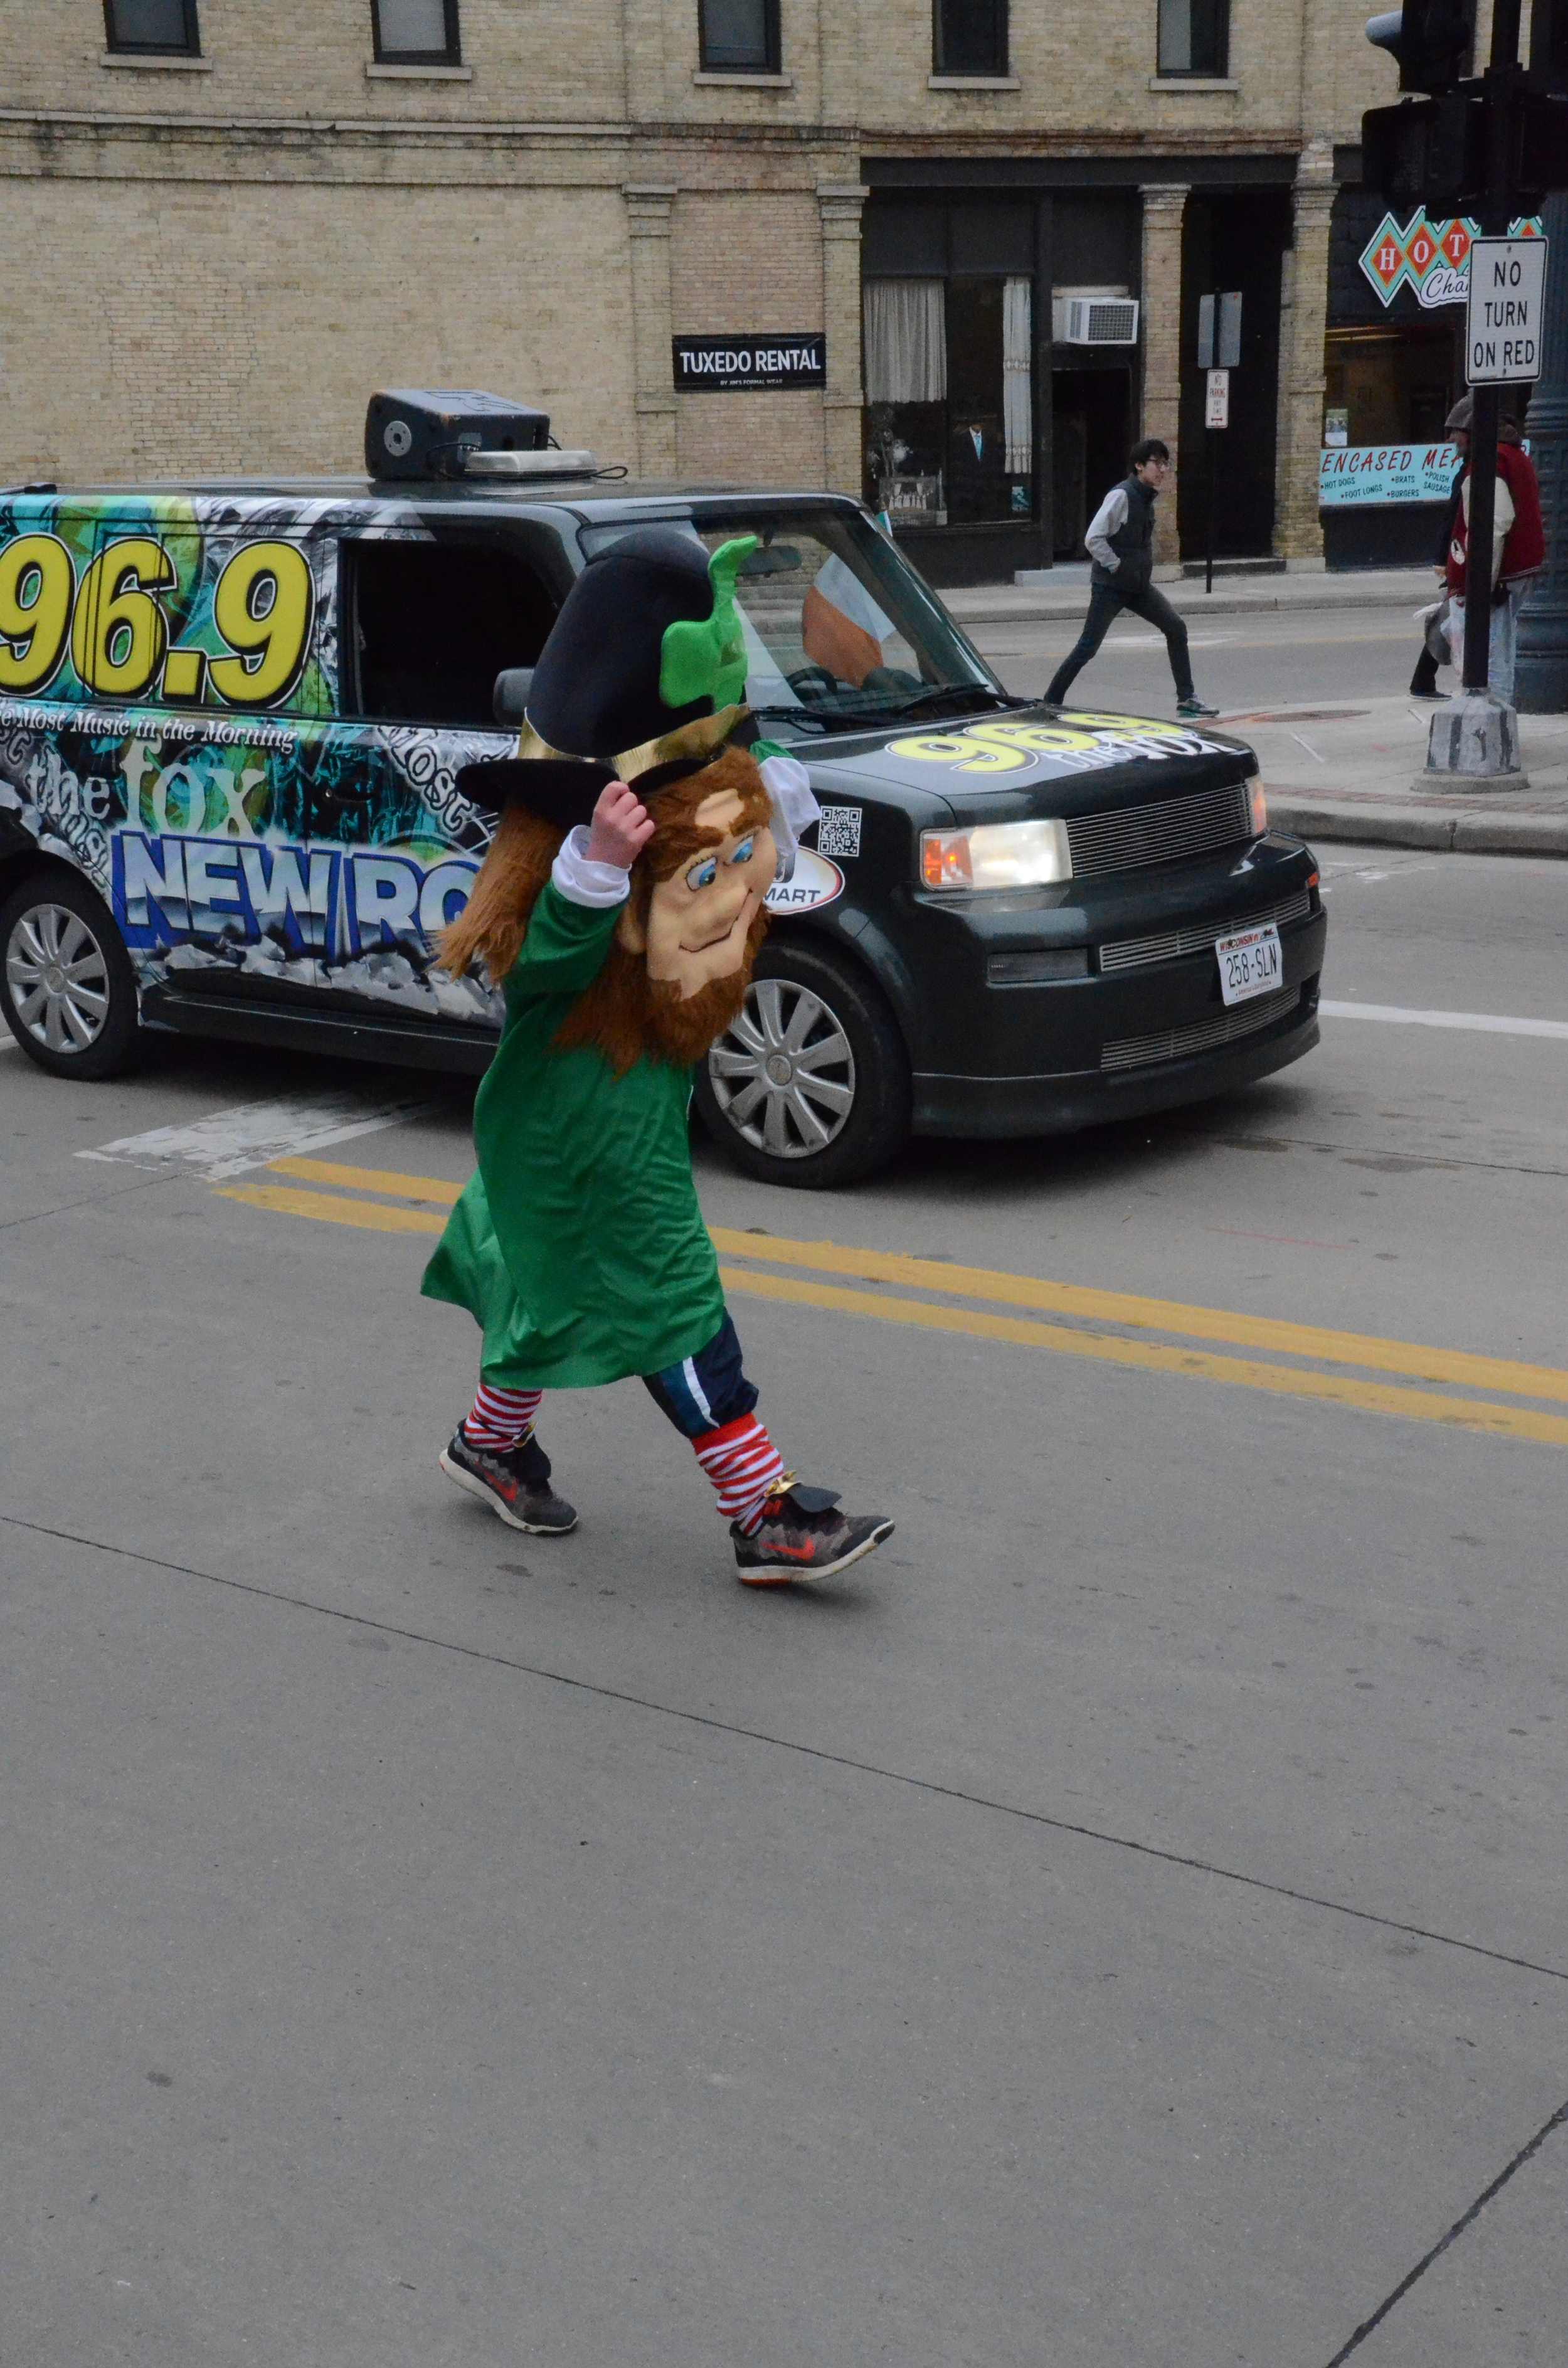 leprechaun spreads St. Patrick's Day cheer during the parade accompanied by the 95.9 The Fox radio station vehicle.